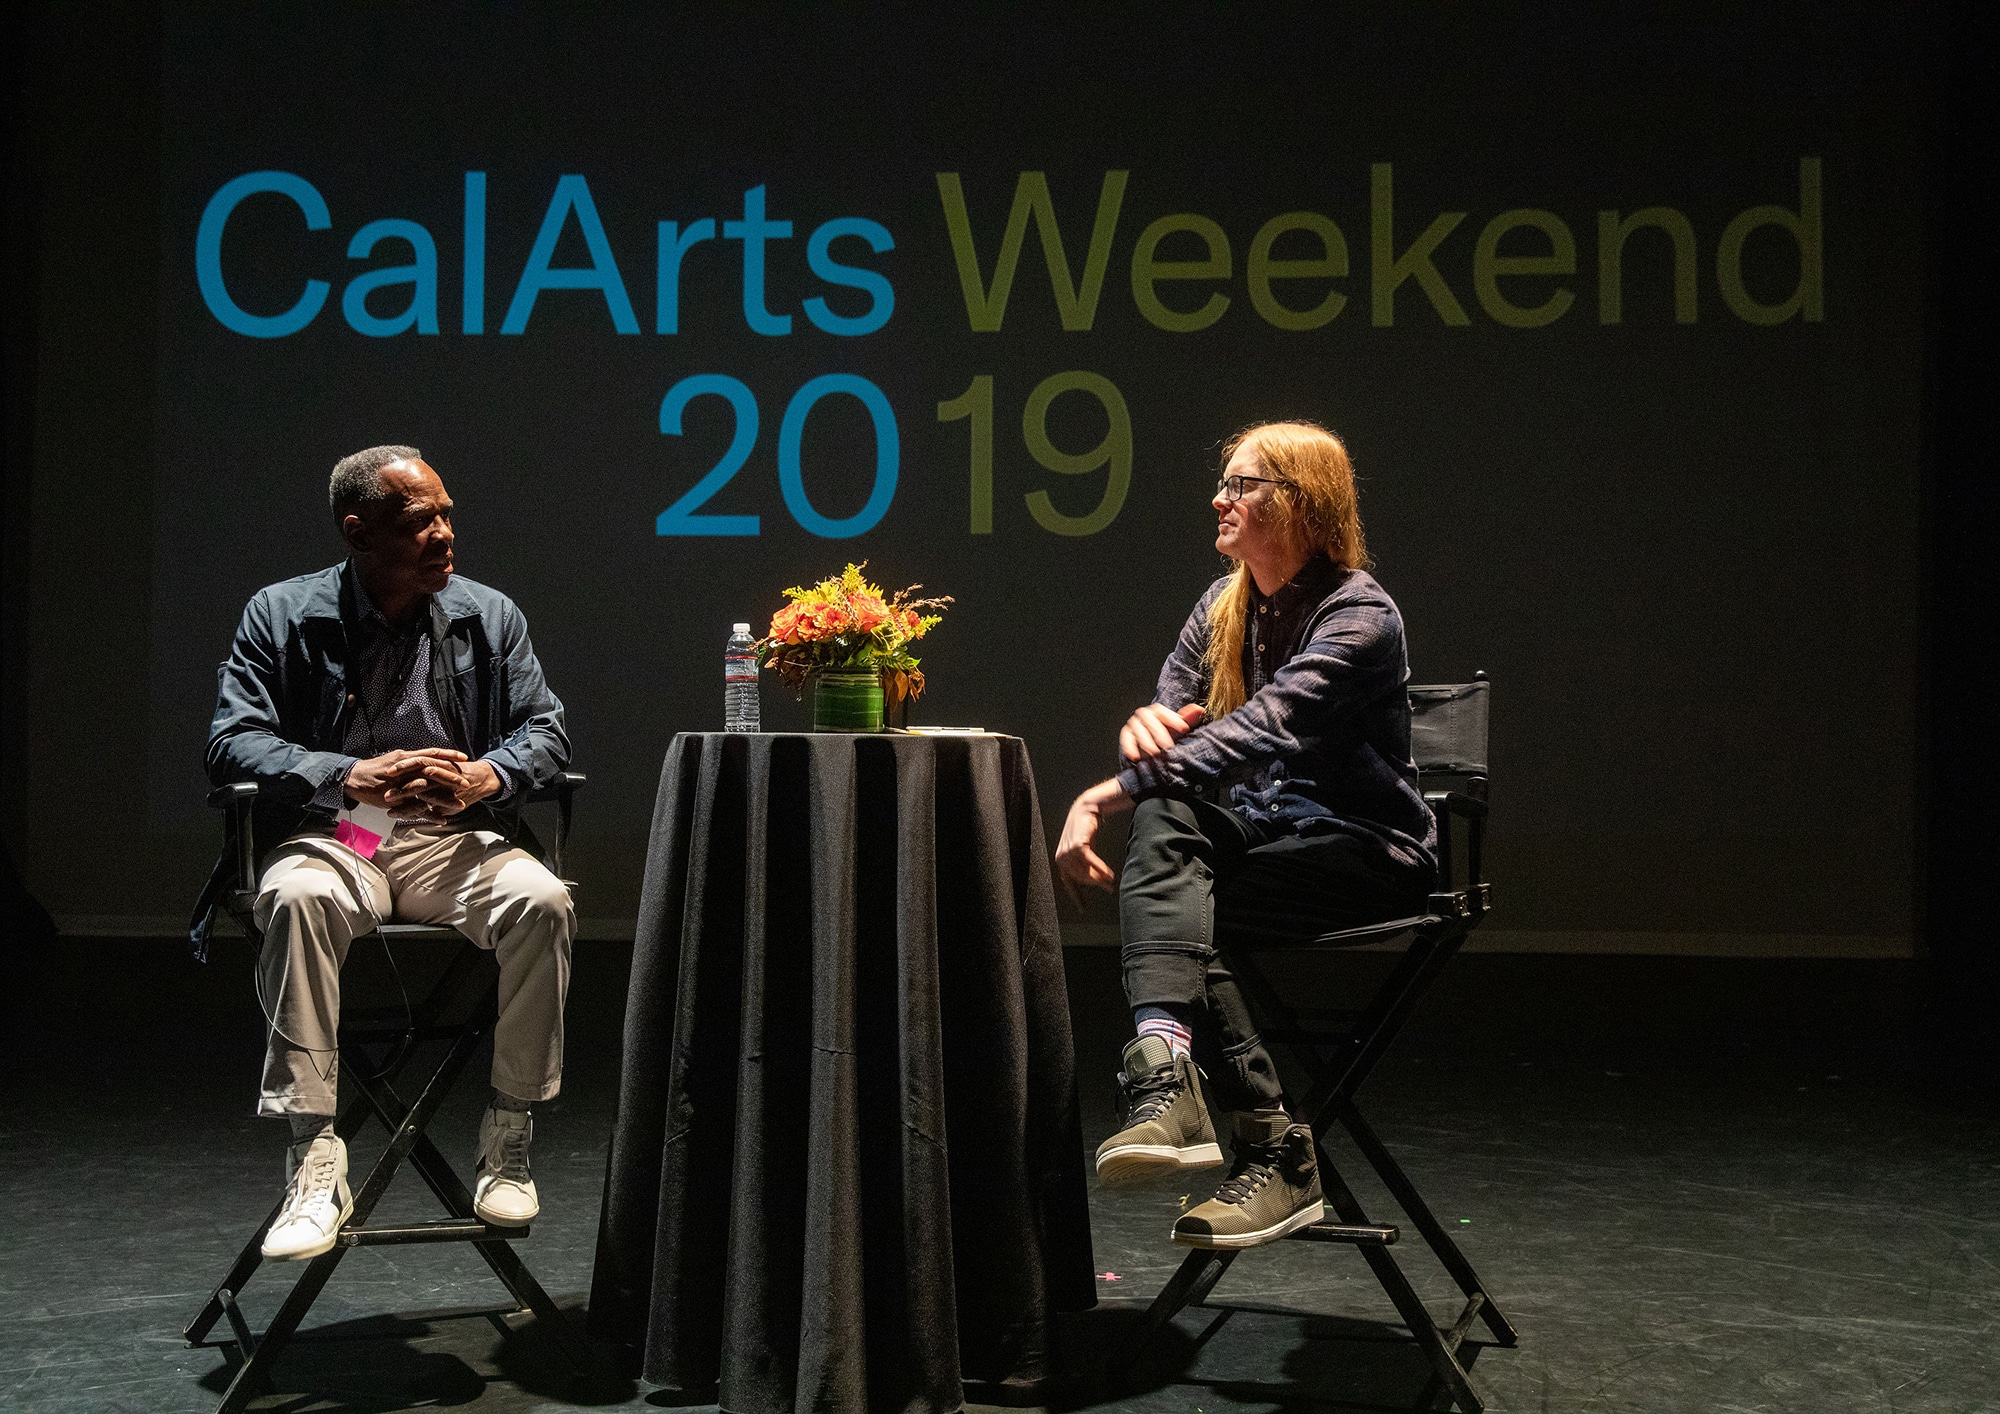 CalArts Faculty members Charles Gaines and Michael Ned Holte in conversation